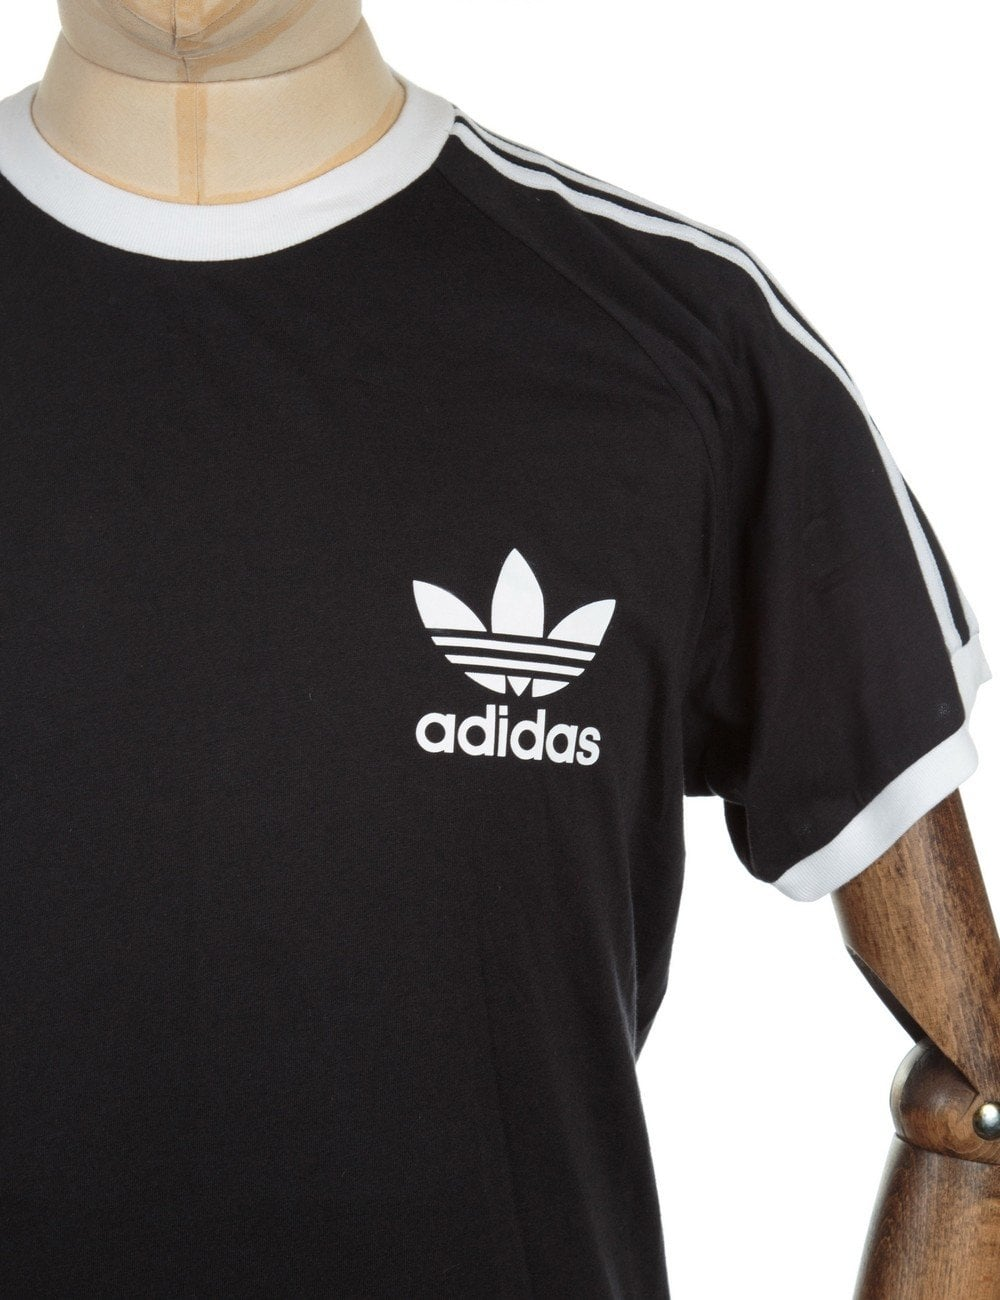 adidas originals retro logo tee